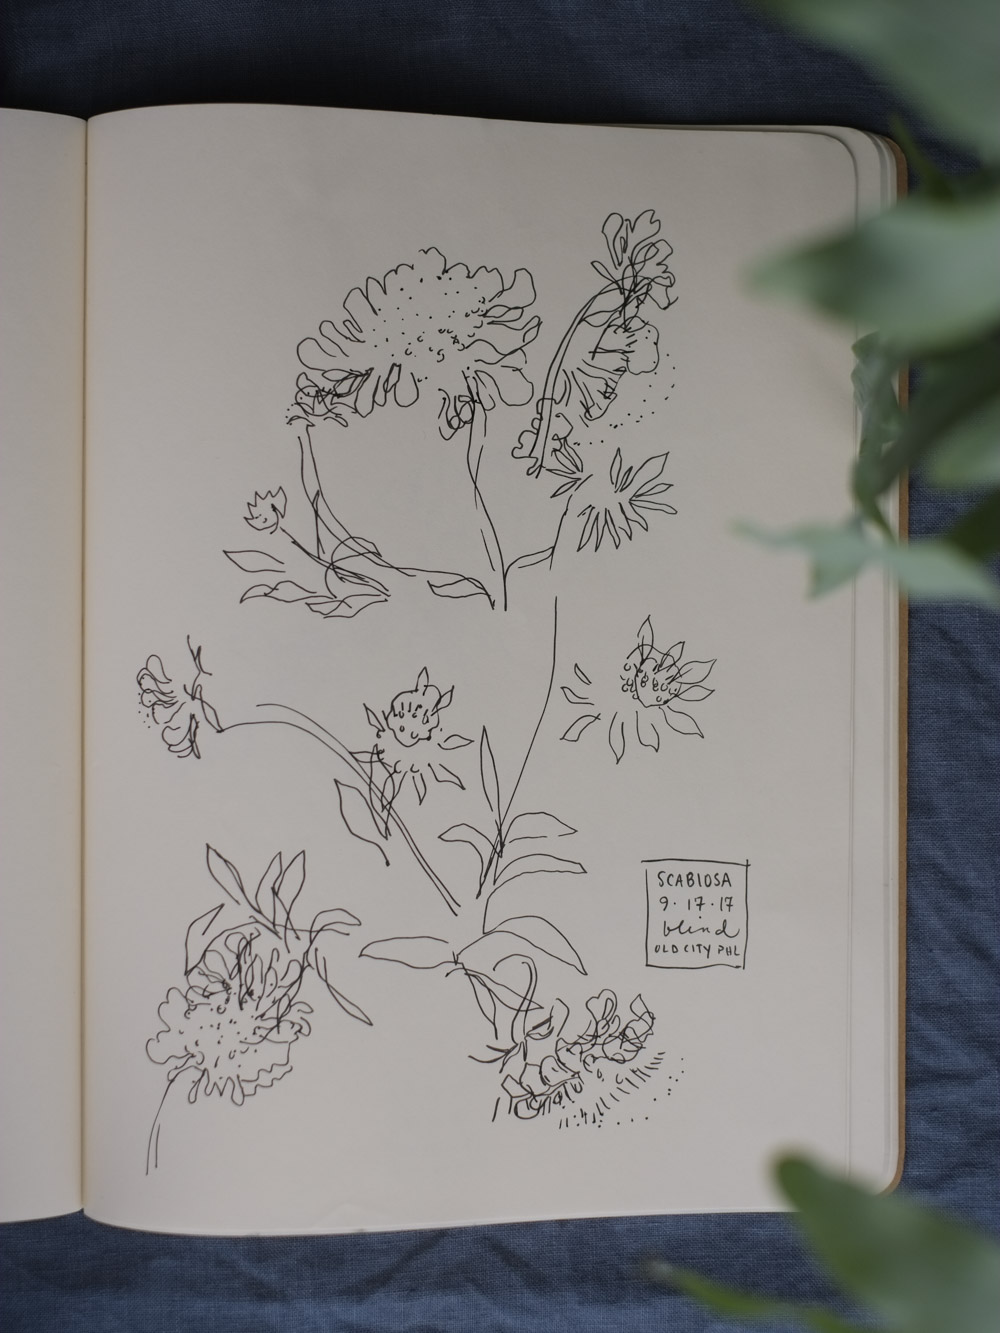 Erin_Ellis_daily_botanical_blind_drawings_sept_2017.jpg-21.jpg